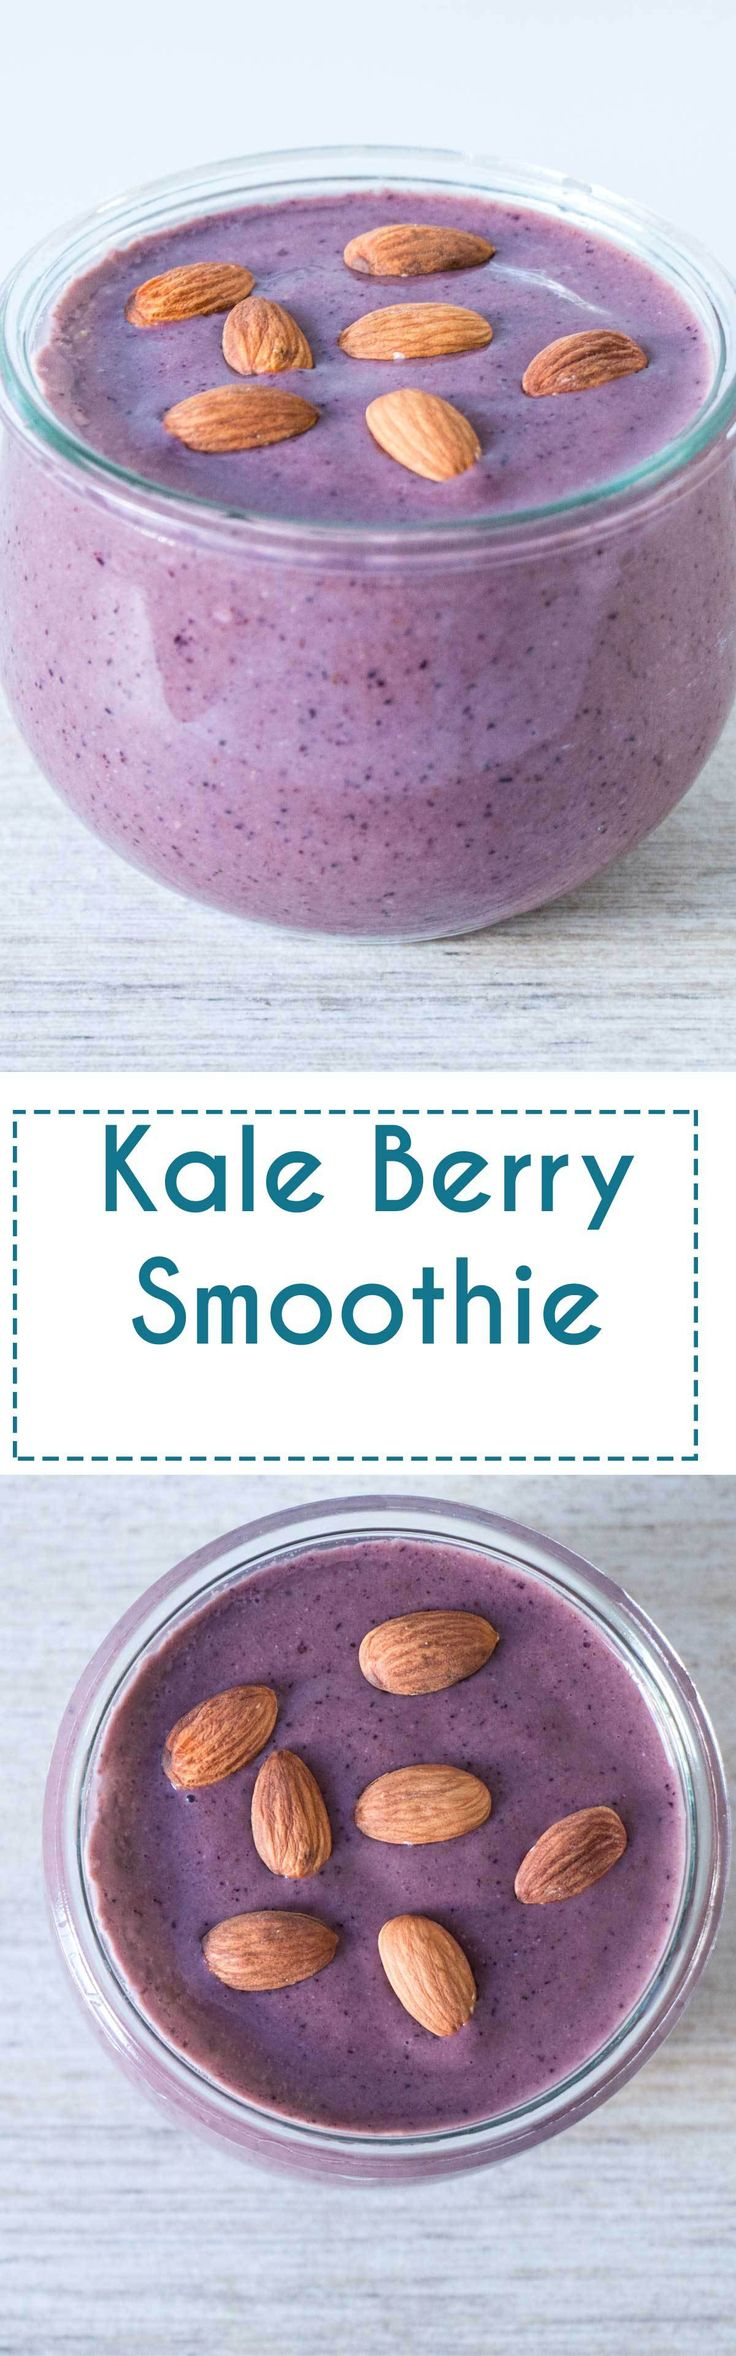 Kale Berry Smoothie - A easy smoothie recipe that is packed with antioxidants and energy boosting ingredients.